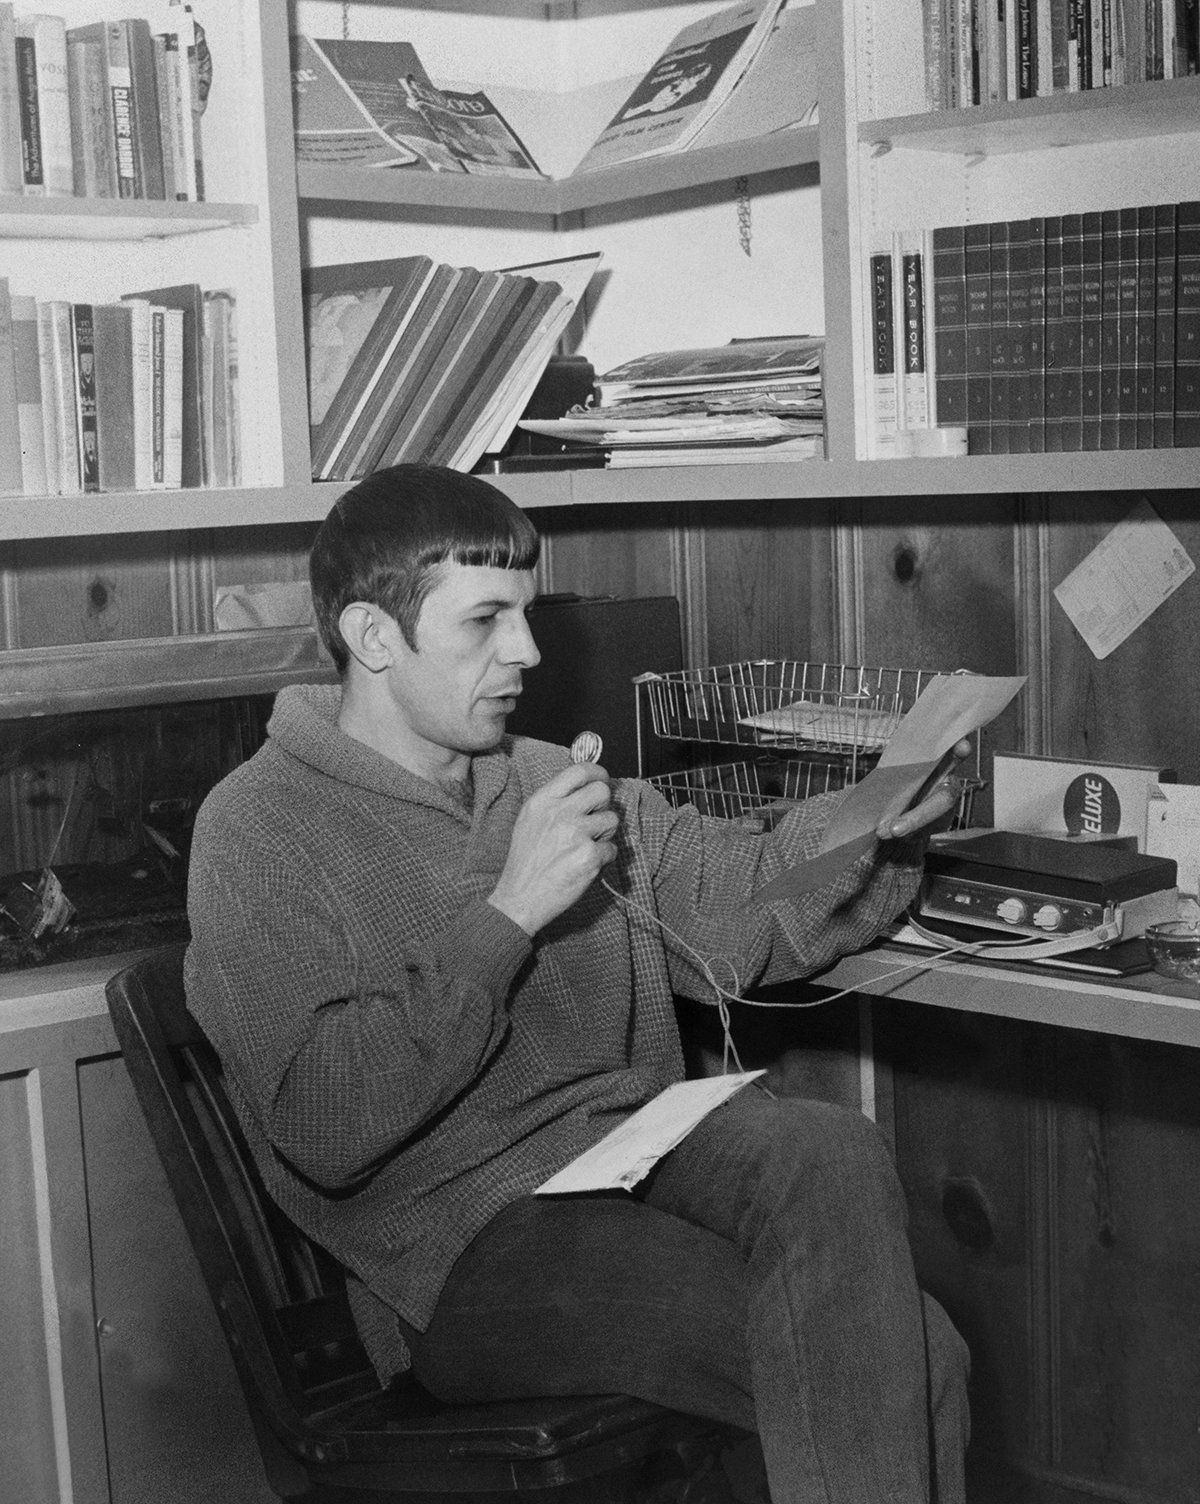 14 photos of Leonard Nimoy at work and home that will make a Vulcan smile